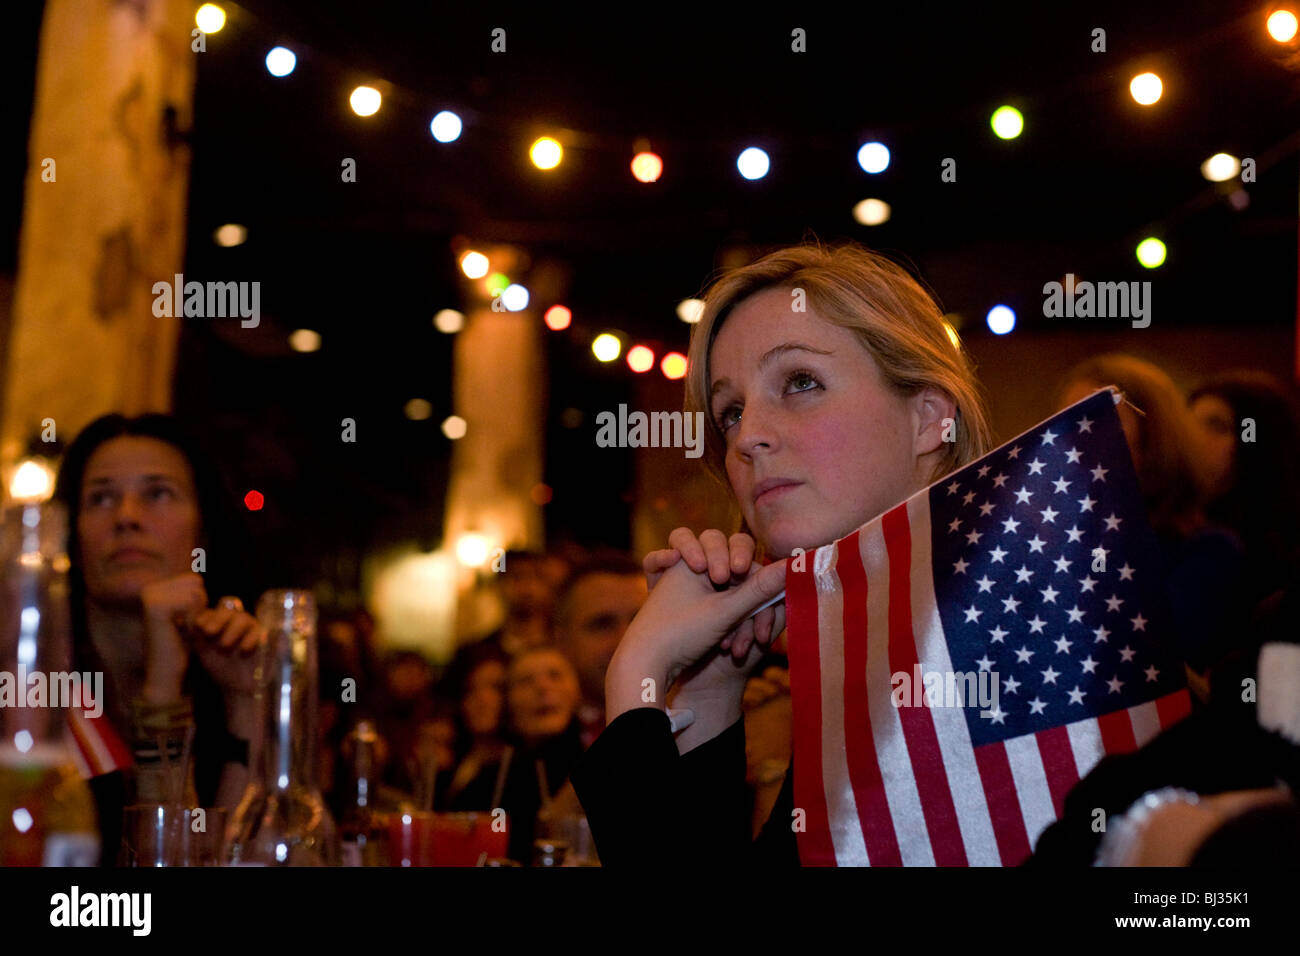 A US citizen listens spellbound to Barack Obama's inauguration speech. - Stock Image